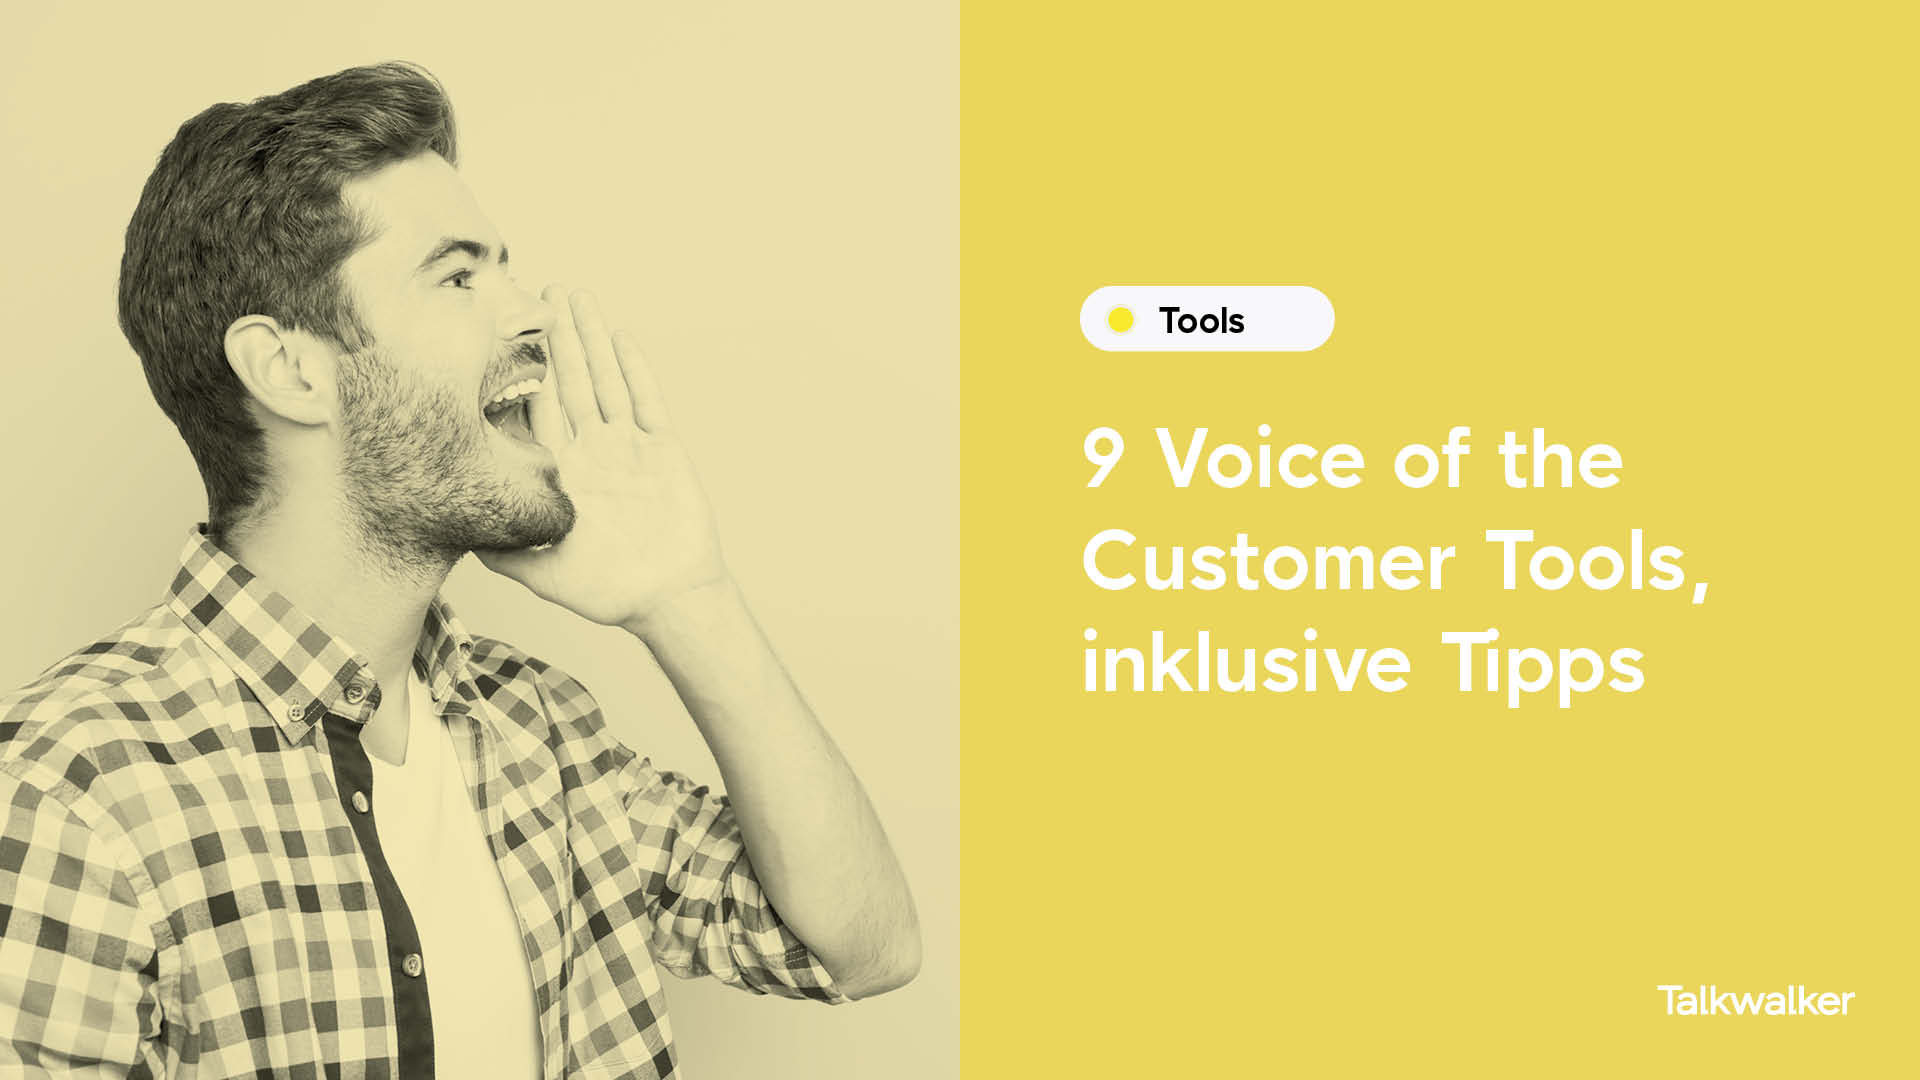 9 Voice of the Customer Tools, inklusive Tipps